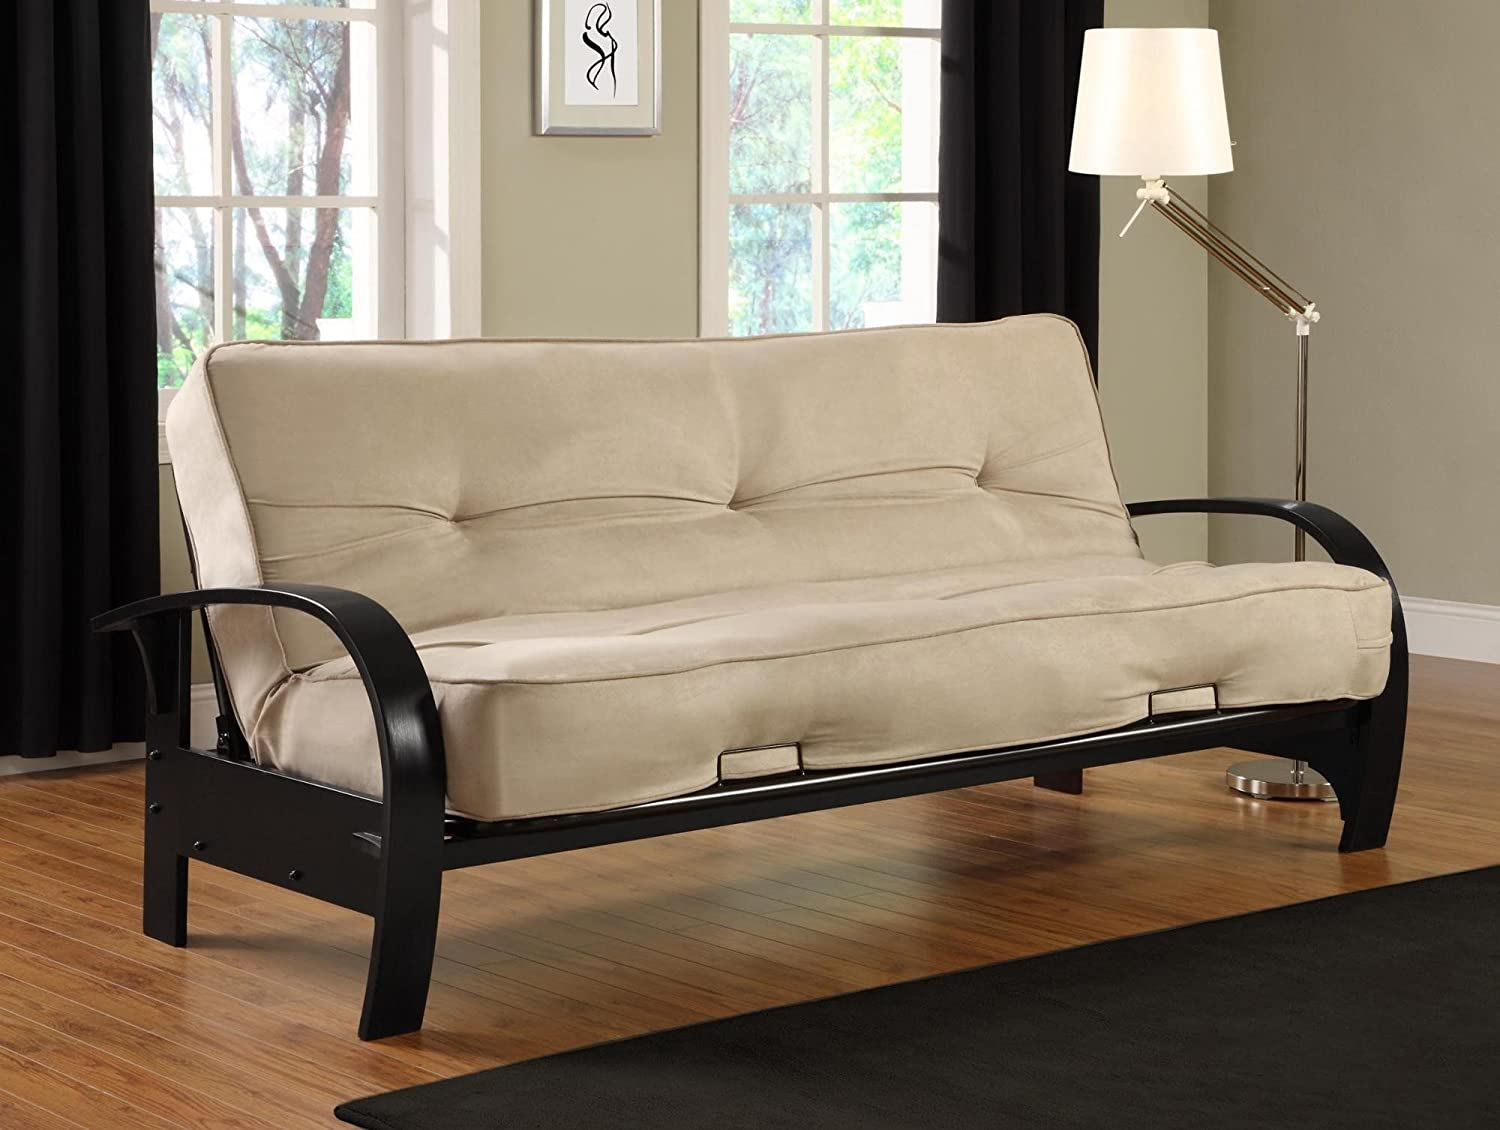 Sofas En Madrid Capital Simple Convertible Sofa Bed Elegant  # Muebles Goyal Europolis